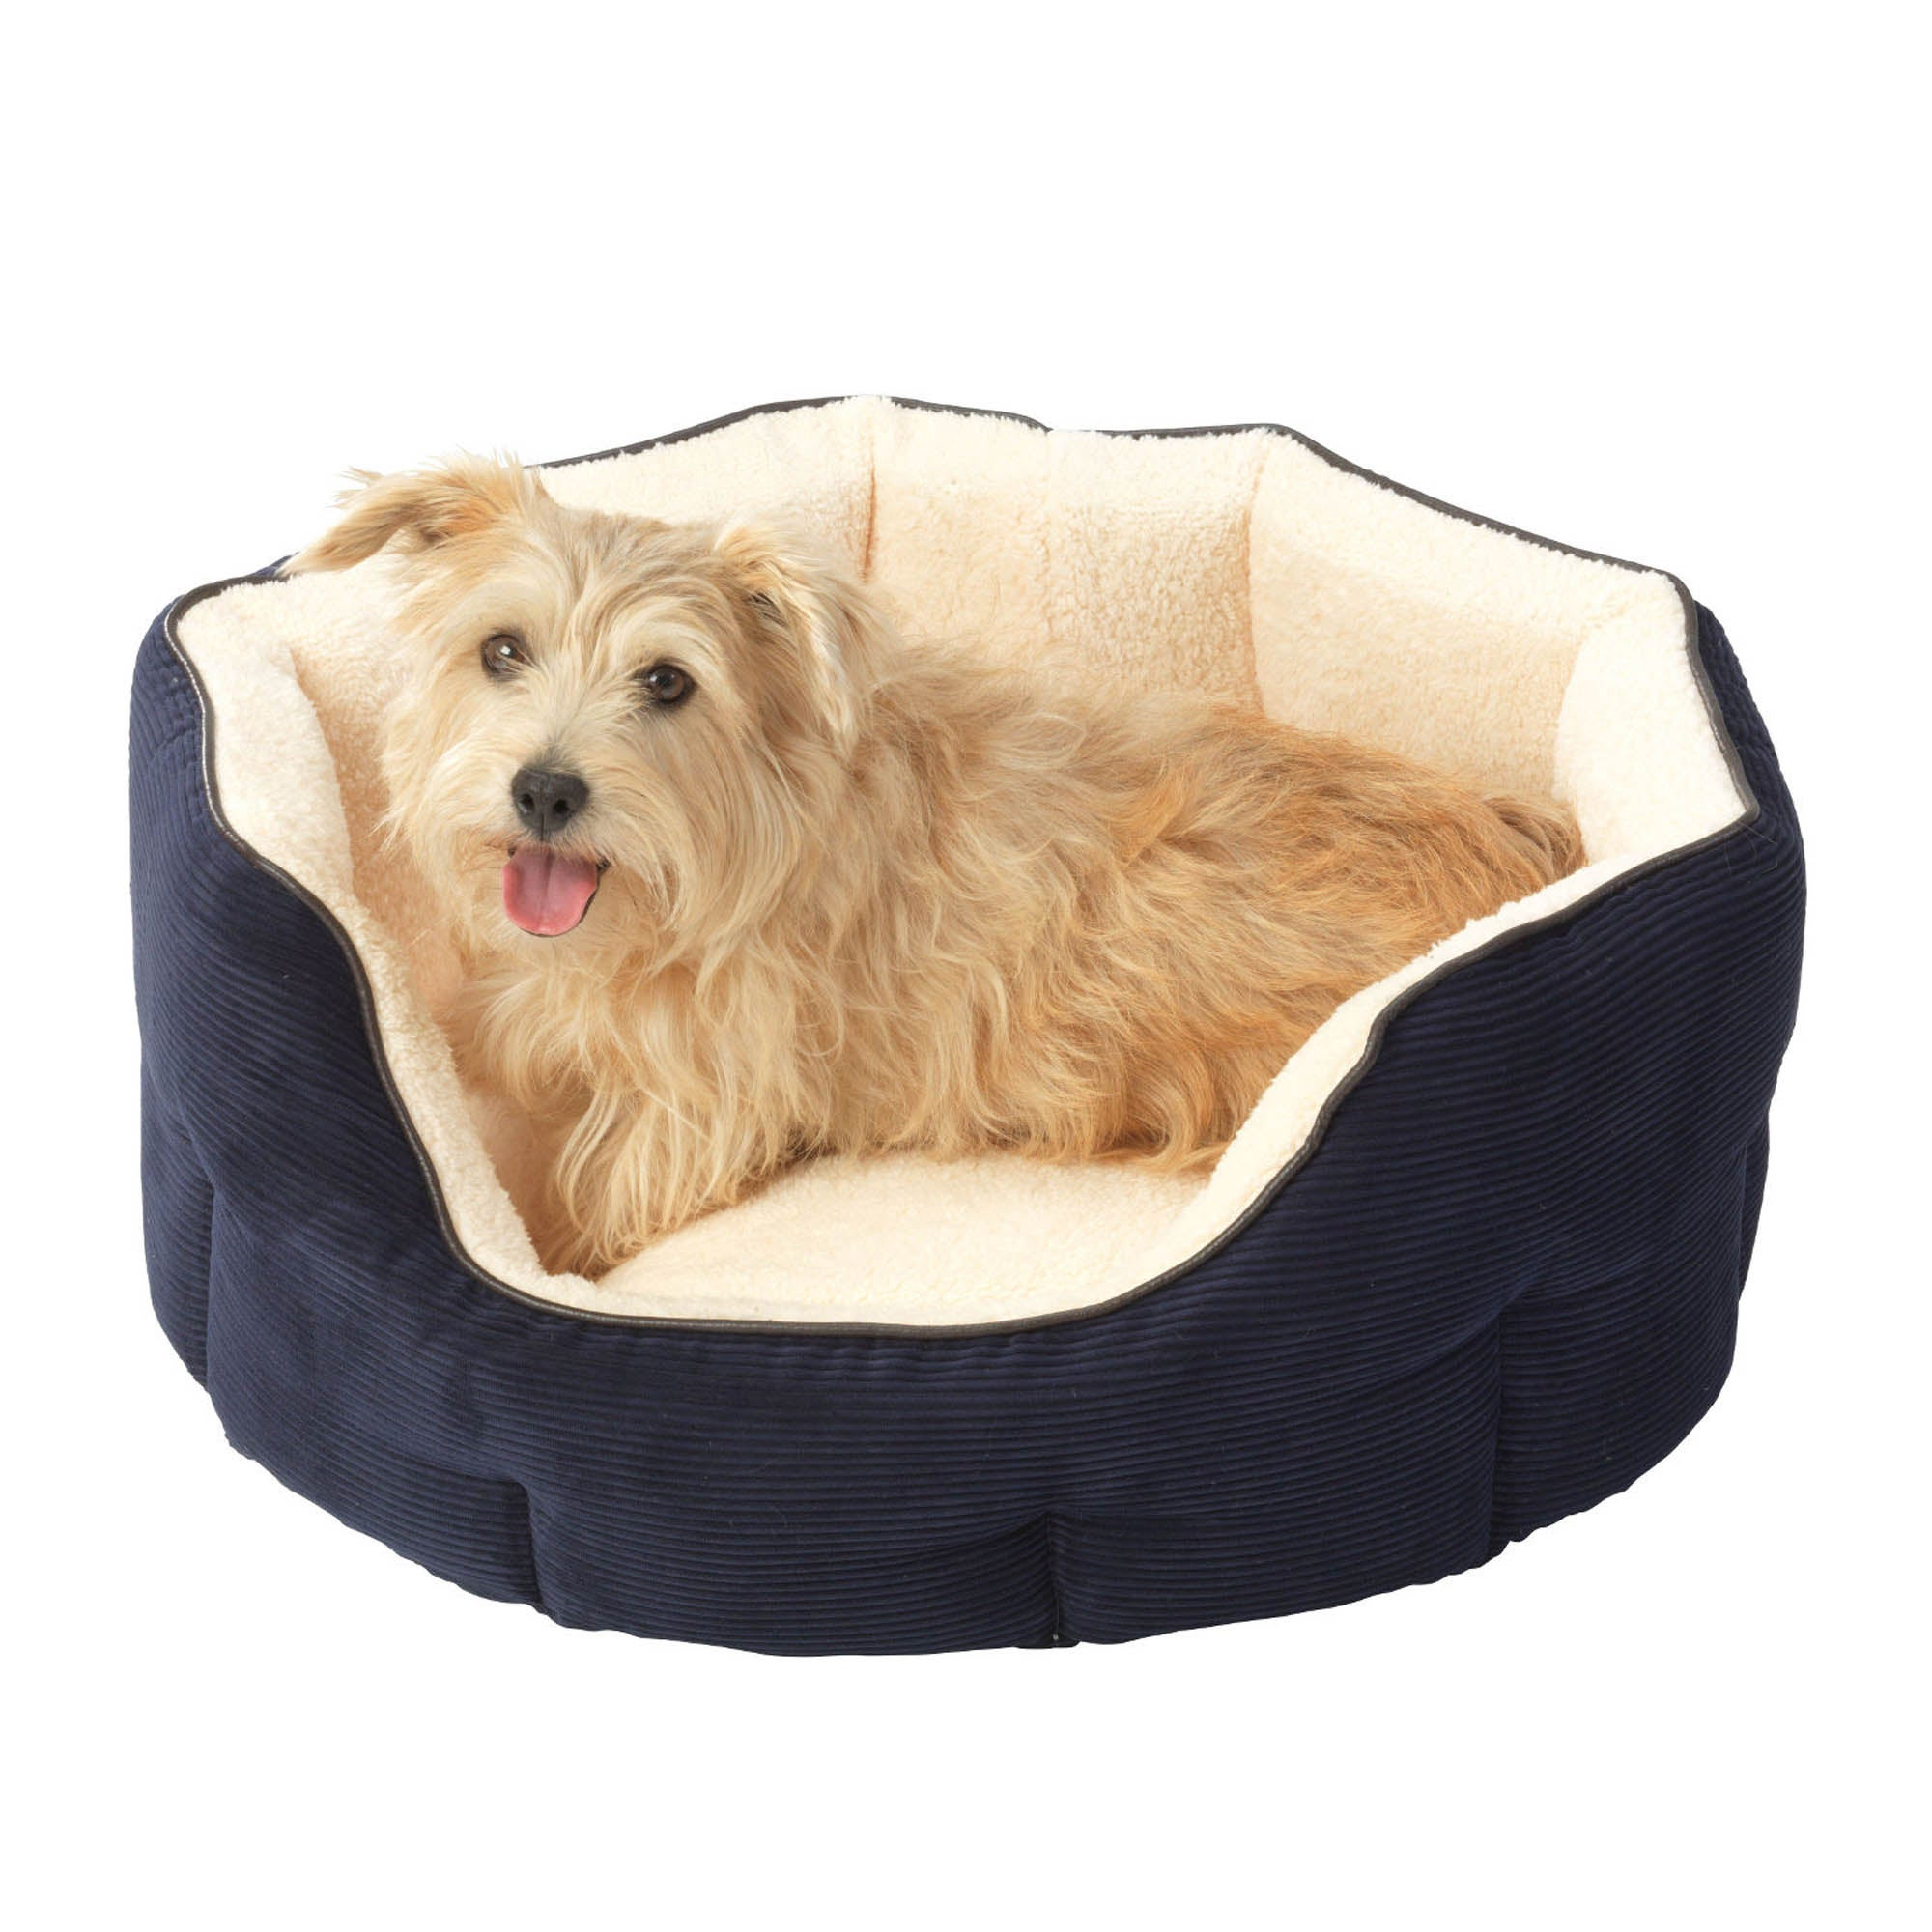 House of Paws Navy Memory Foam Oval Dog Bed Indigo (Blue)